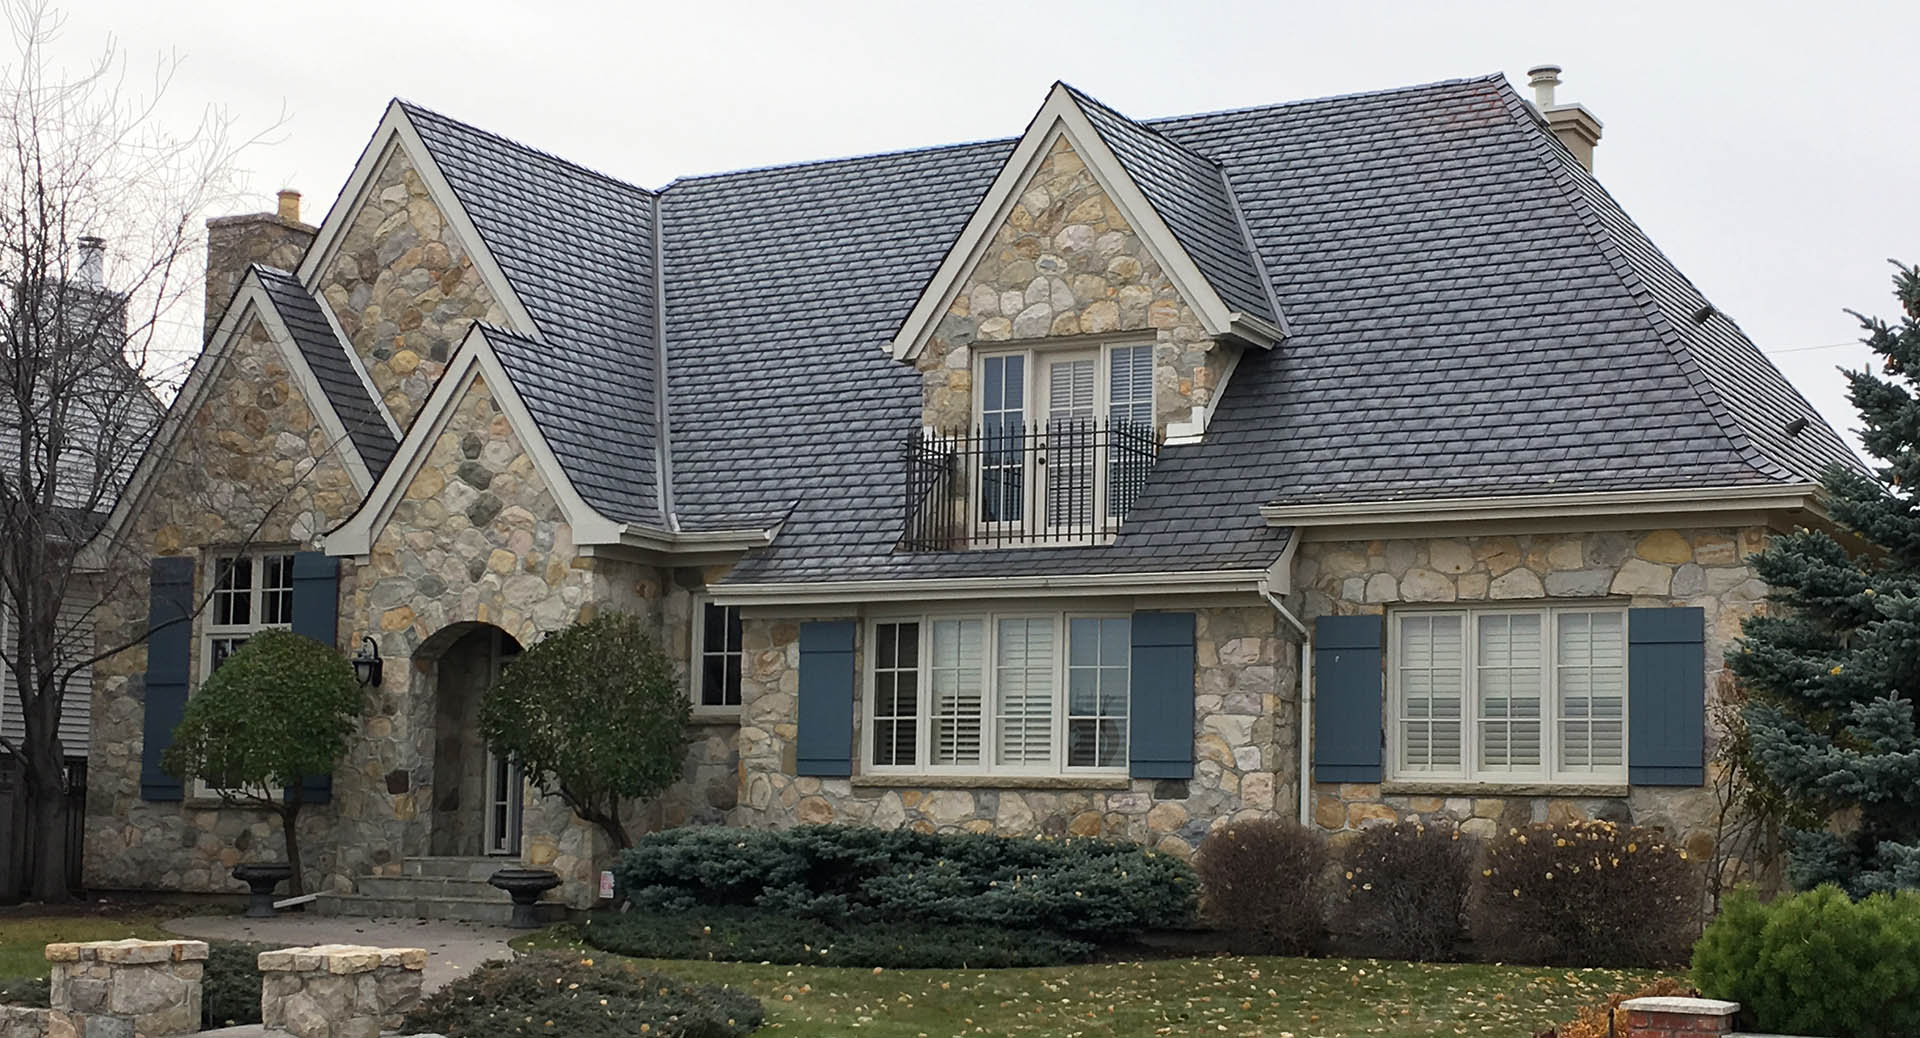 Constant Roof Maintenance? Your Roofing Materials May Be to Blame